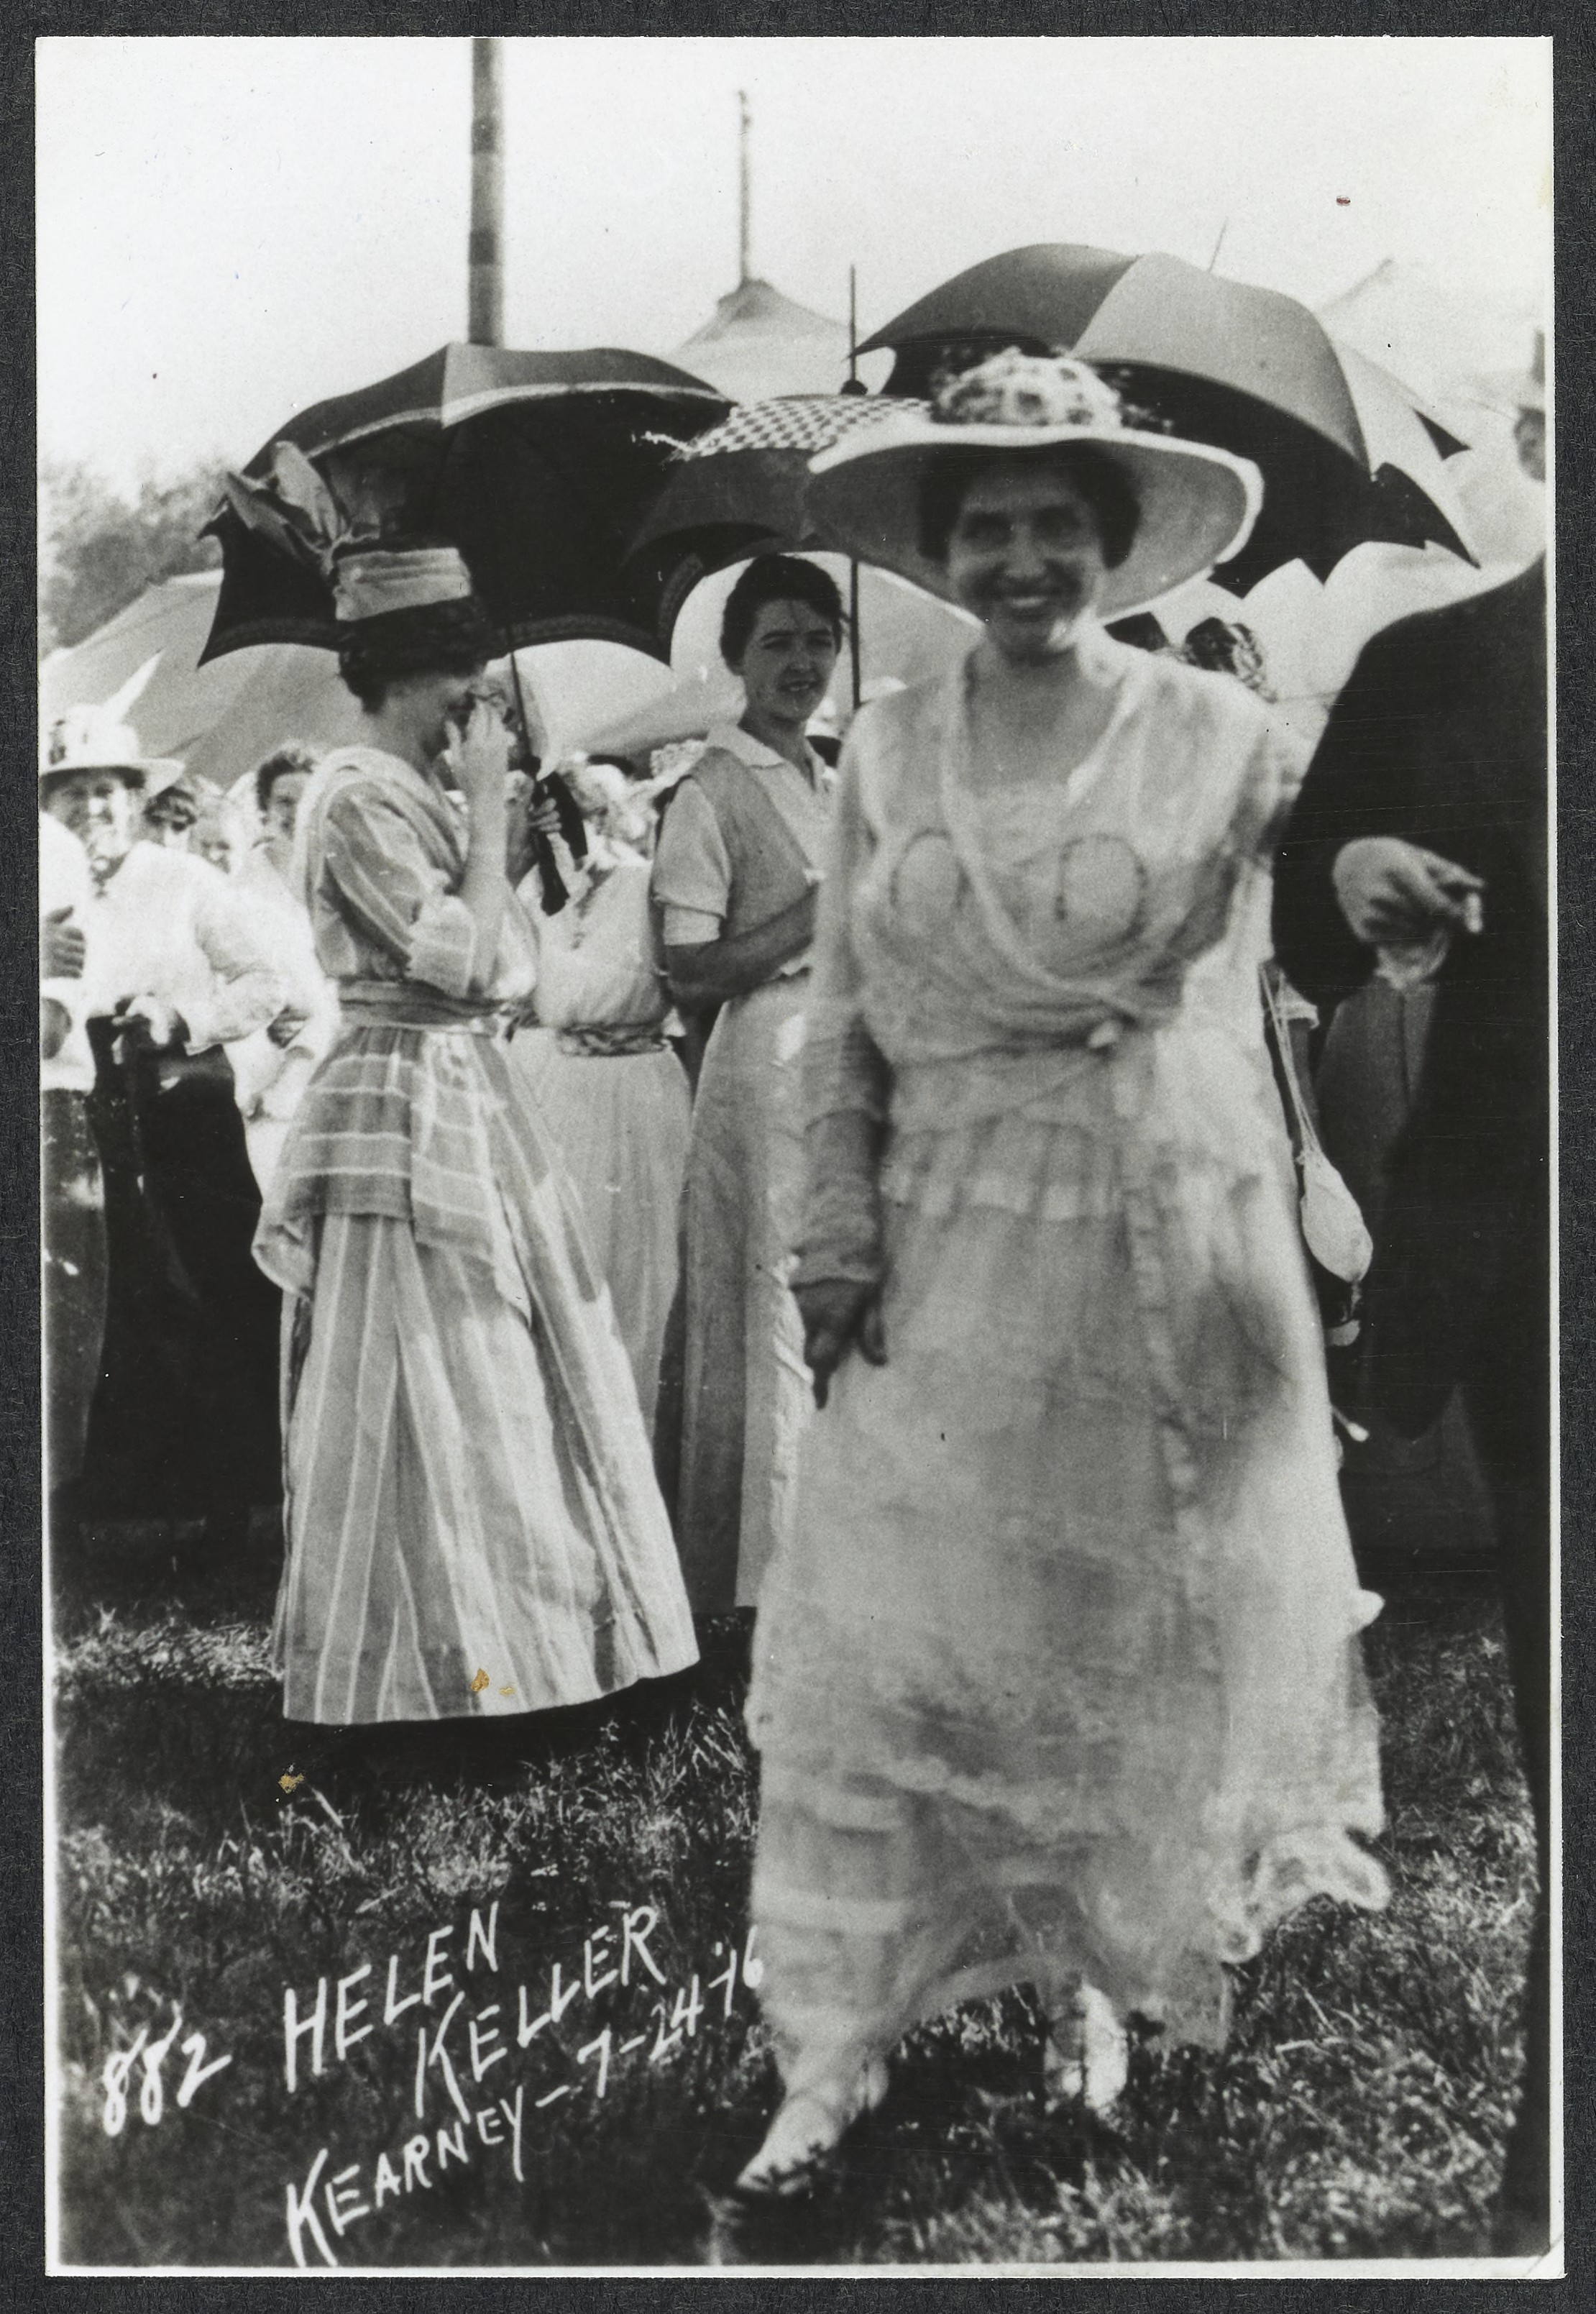 Helen Keller circa 1916. Helen Keller outdoors, wearing a white dress and a broad hat, striding towards the camera. Behind her, women with parasols gather and mingle.